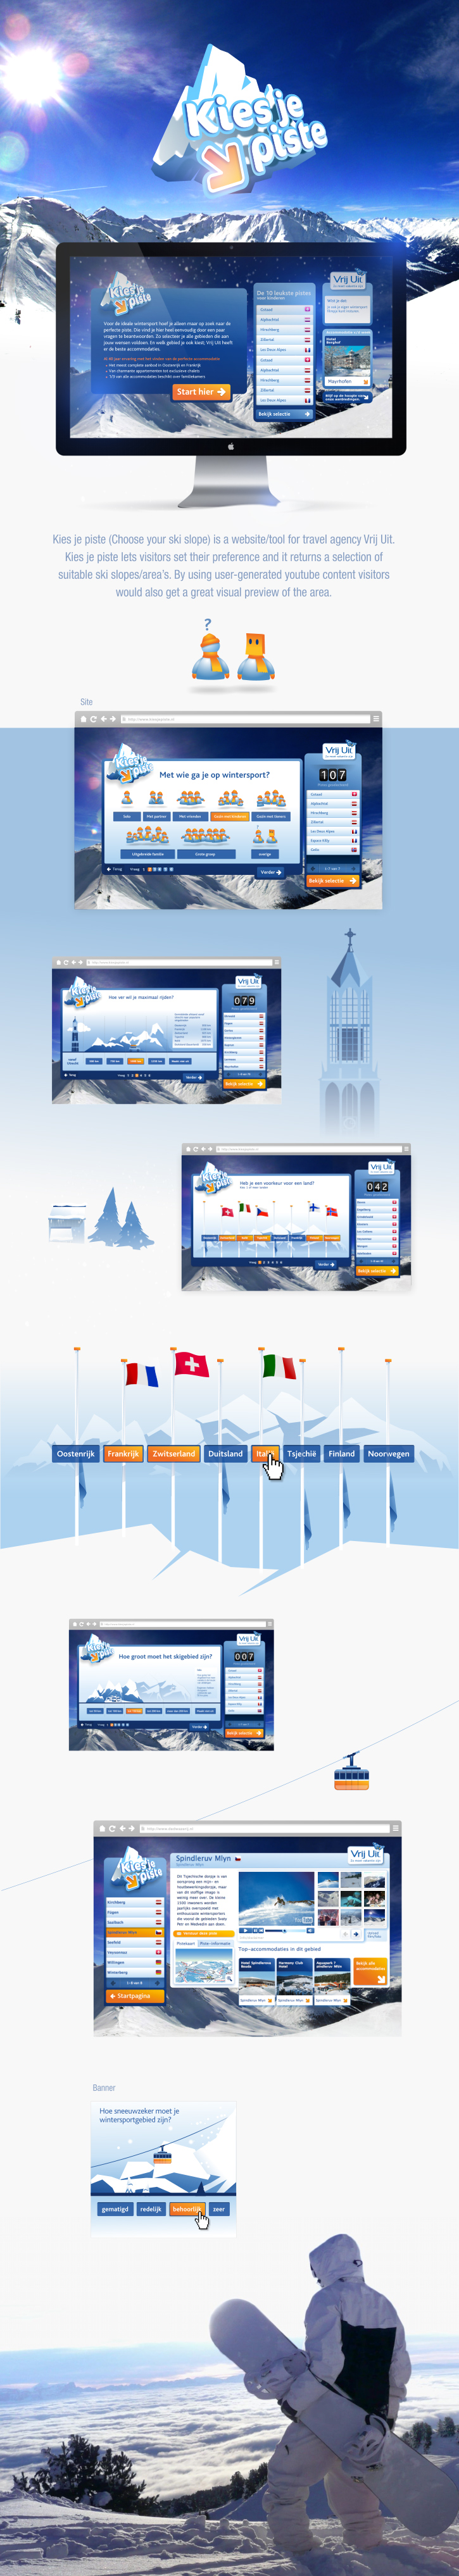 Kies je piste (Choose your ski slope) is a website/tool for travel agency Vrij Uit. Kies je piste lets visitors set their preference and it returns a selection of suitable ski slopes/area's. By using user-generated youtube content, visitors would also get a great visual preview of the area.